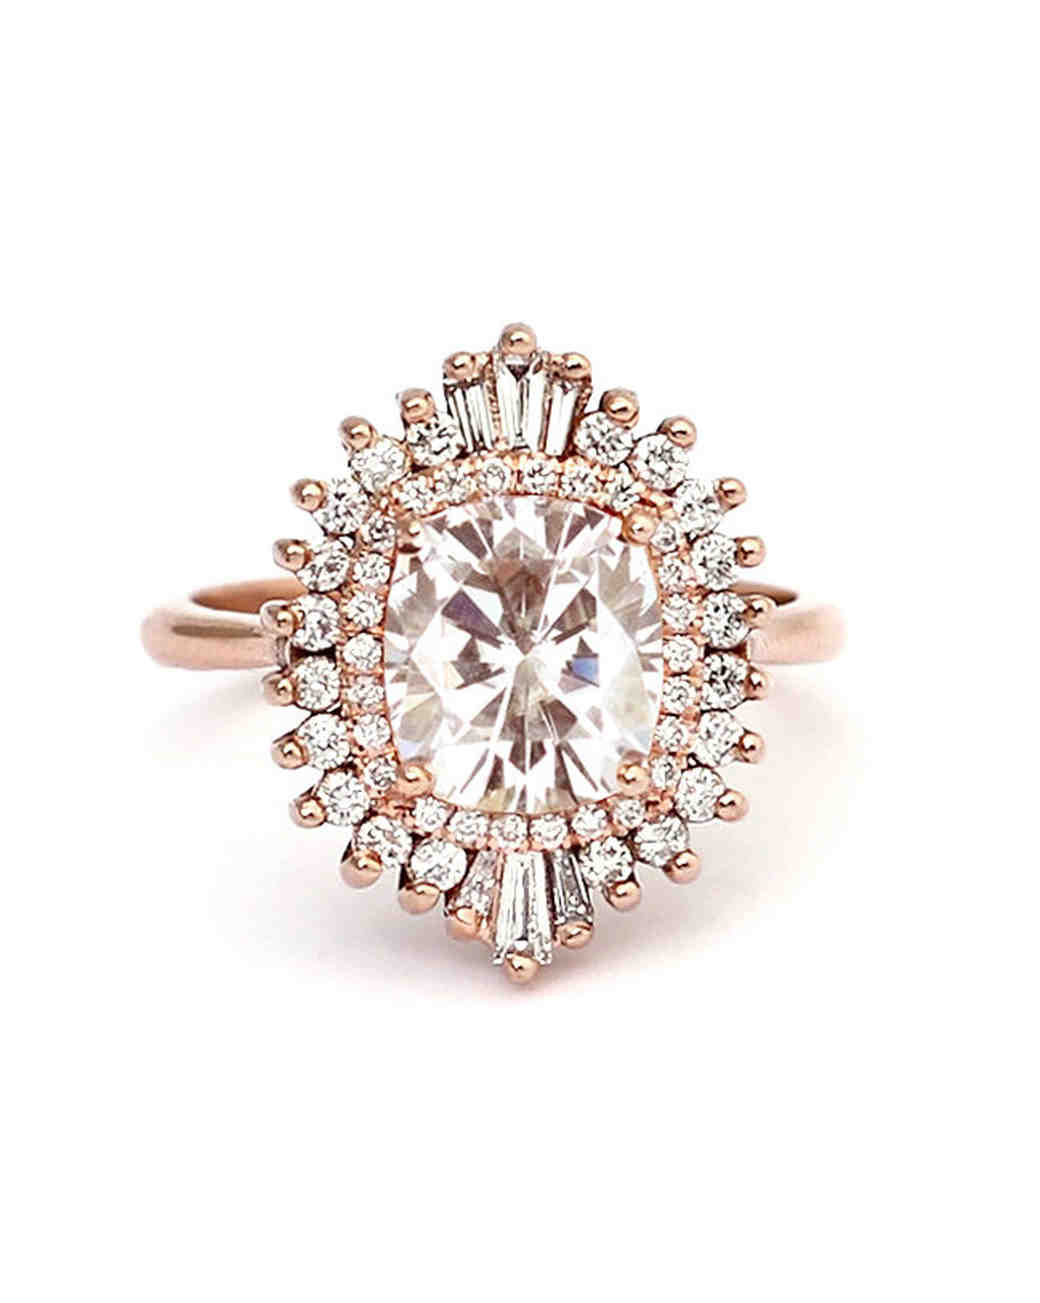 Heidi Gibson Starburst-Effect Cushion-Cut Diamond Engagement Ring